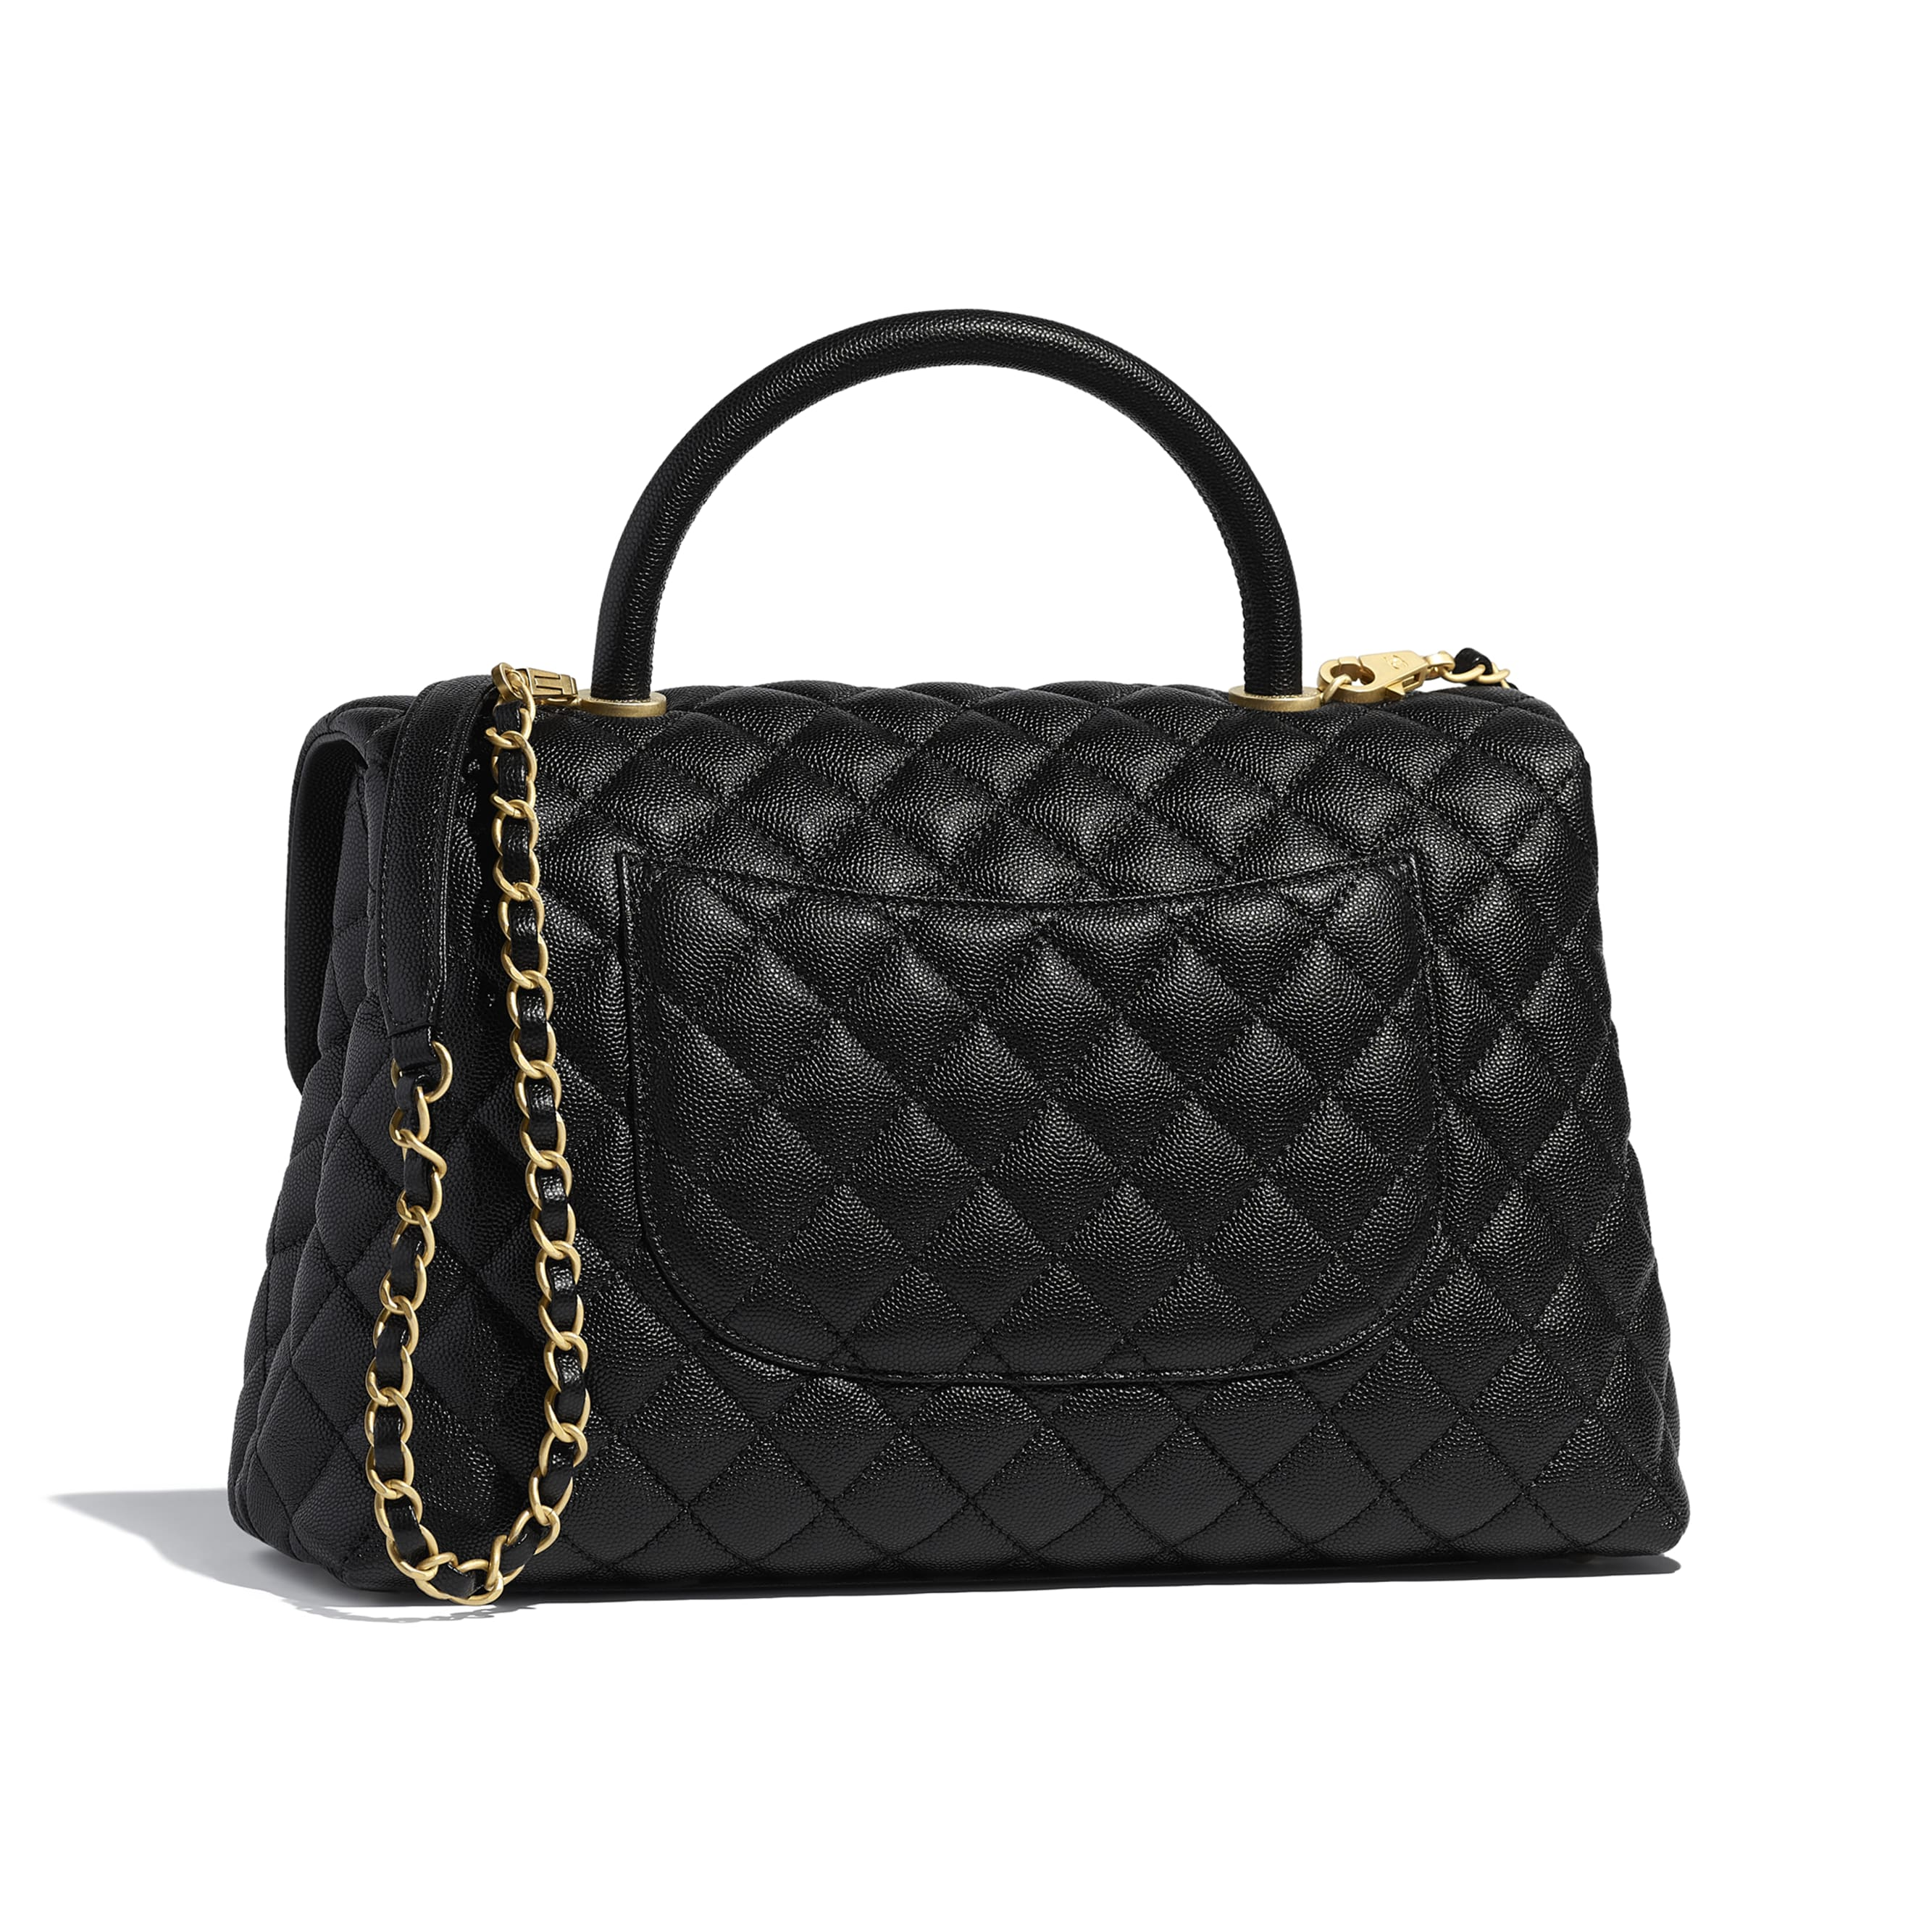 Large Flap Bag With Top Handle - Black - Grained Calfskin & Gold-Tone Metal - Alternative view - see standard sized version